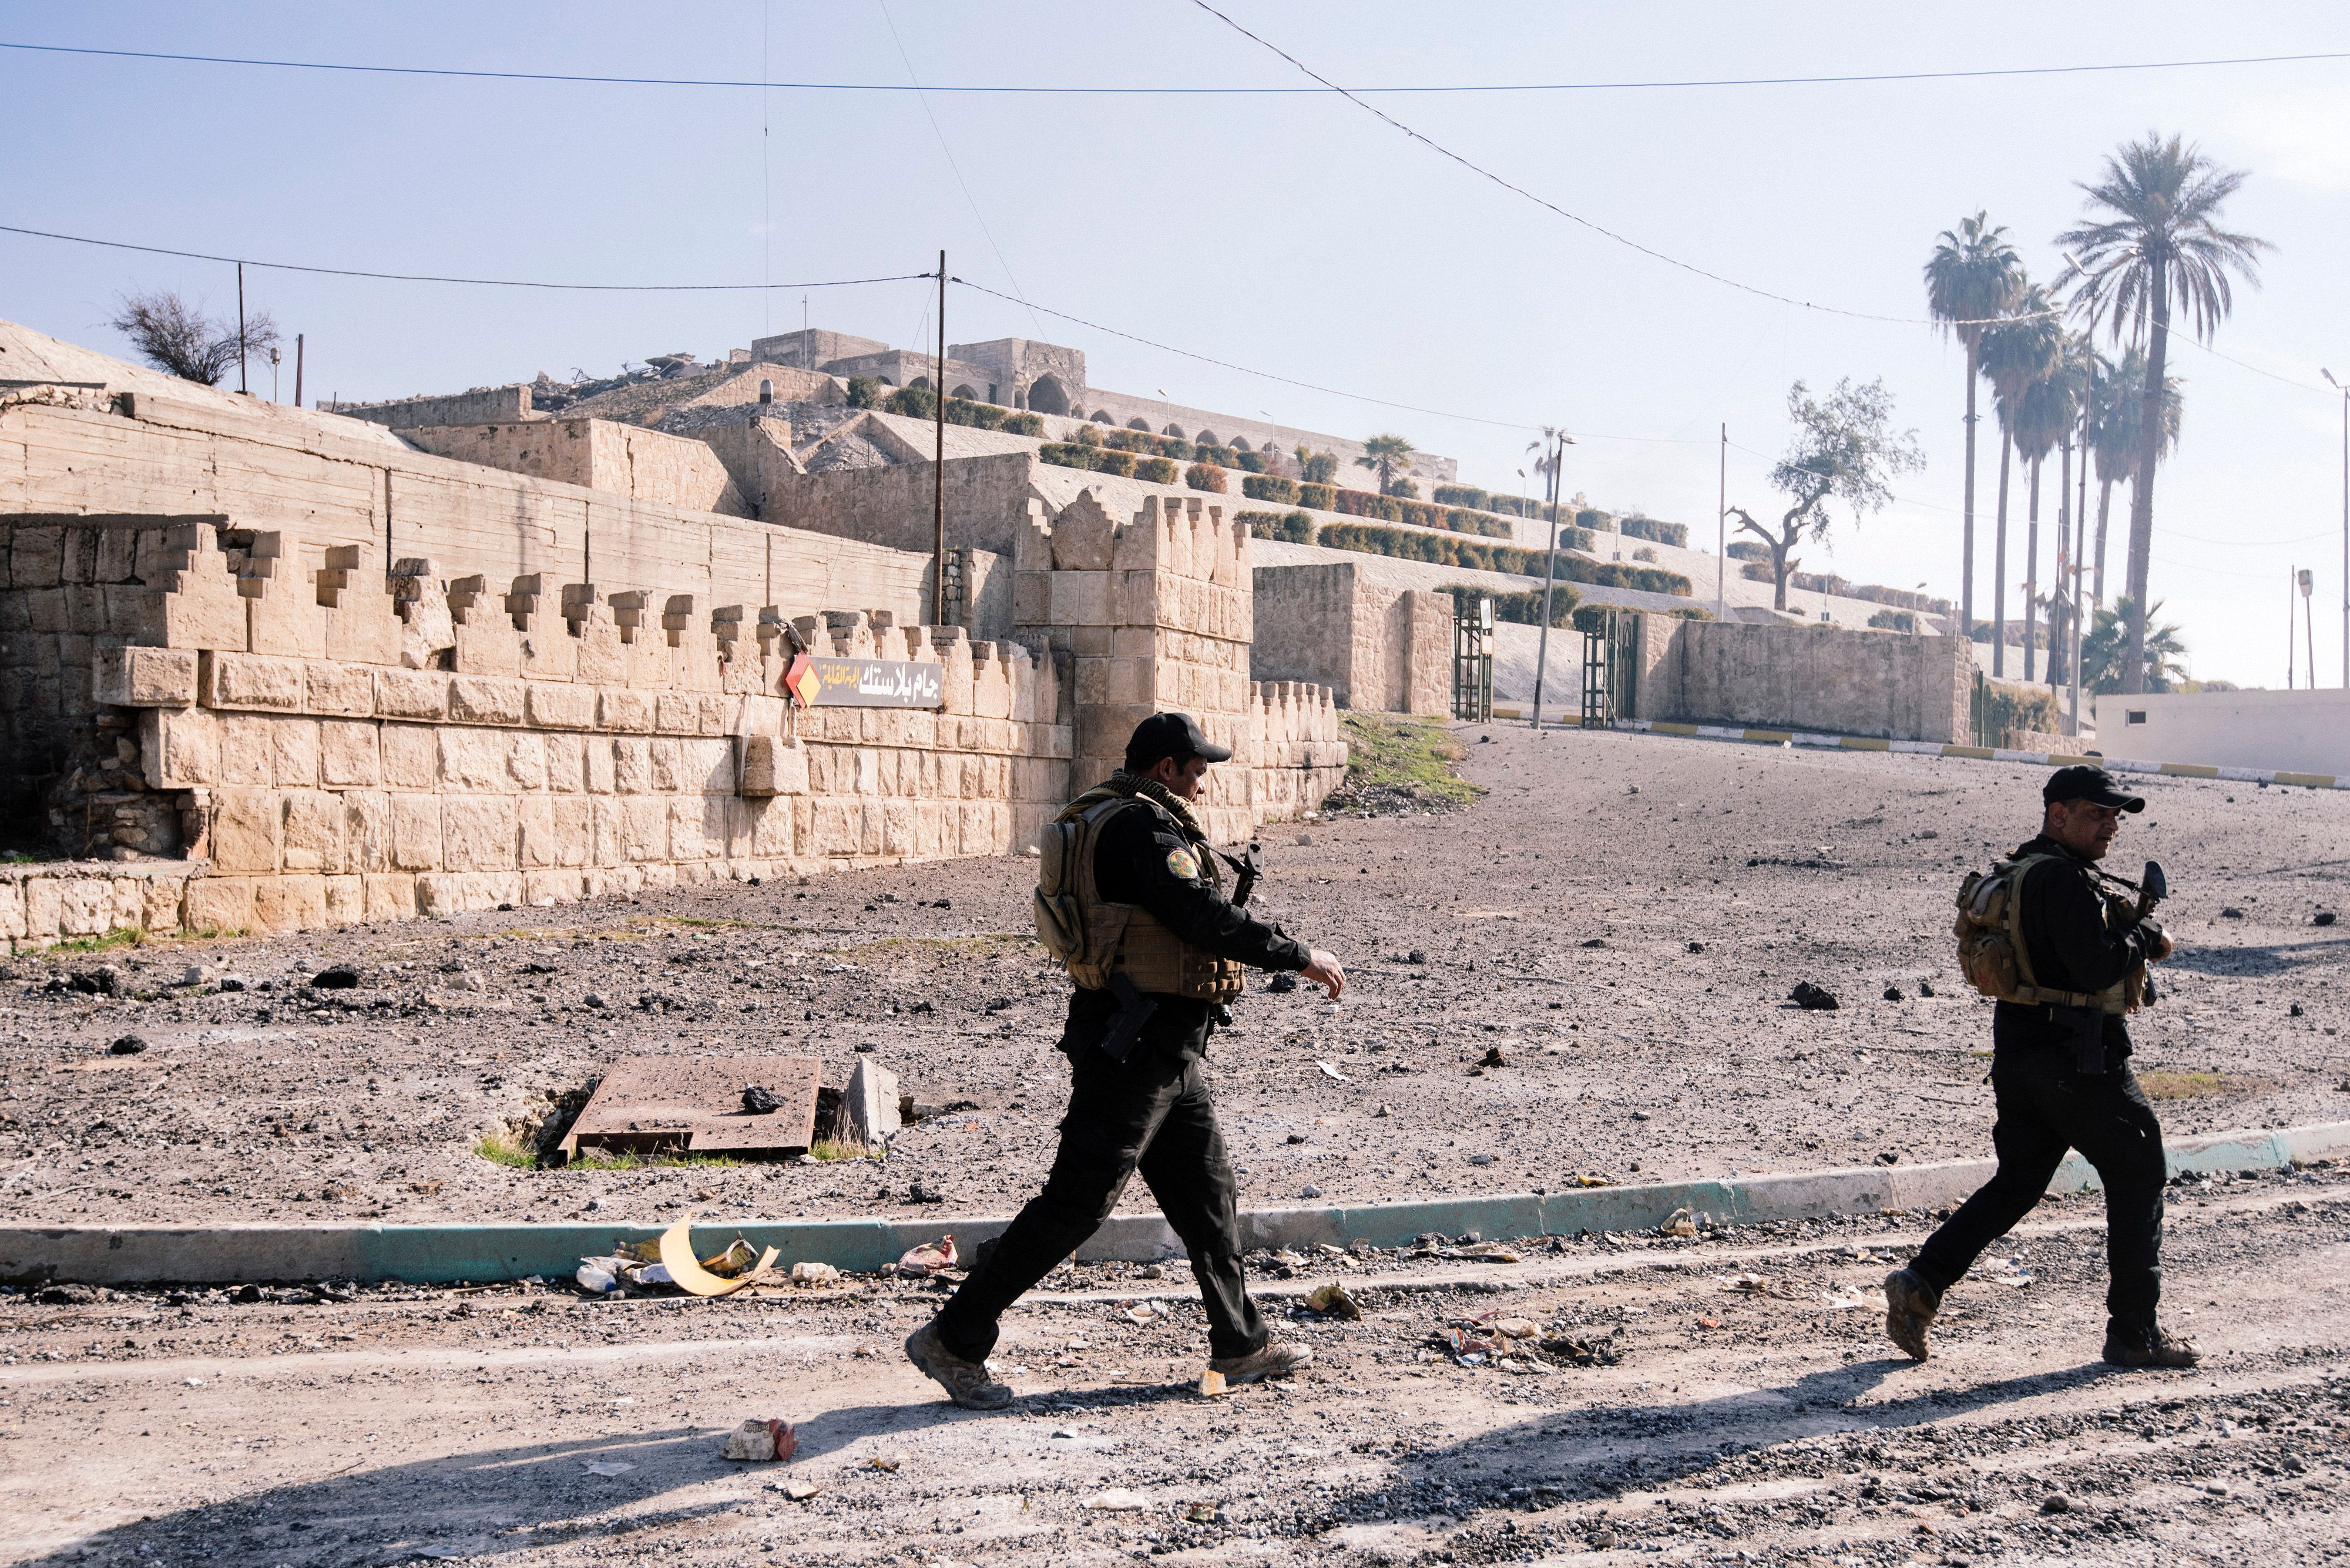 In Mosul, Archaeologists Find Hidden Palace Under Shrine Destroyed by ISIS